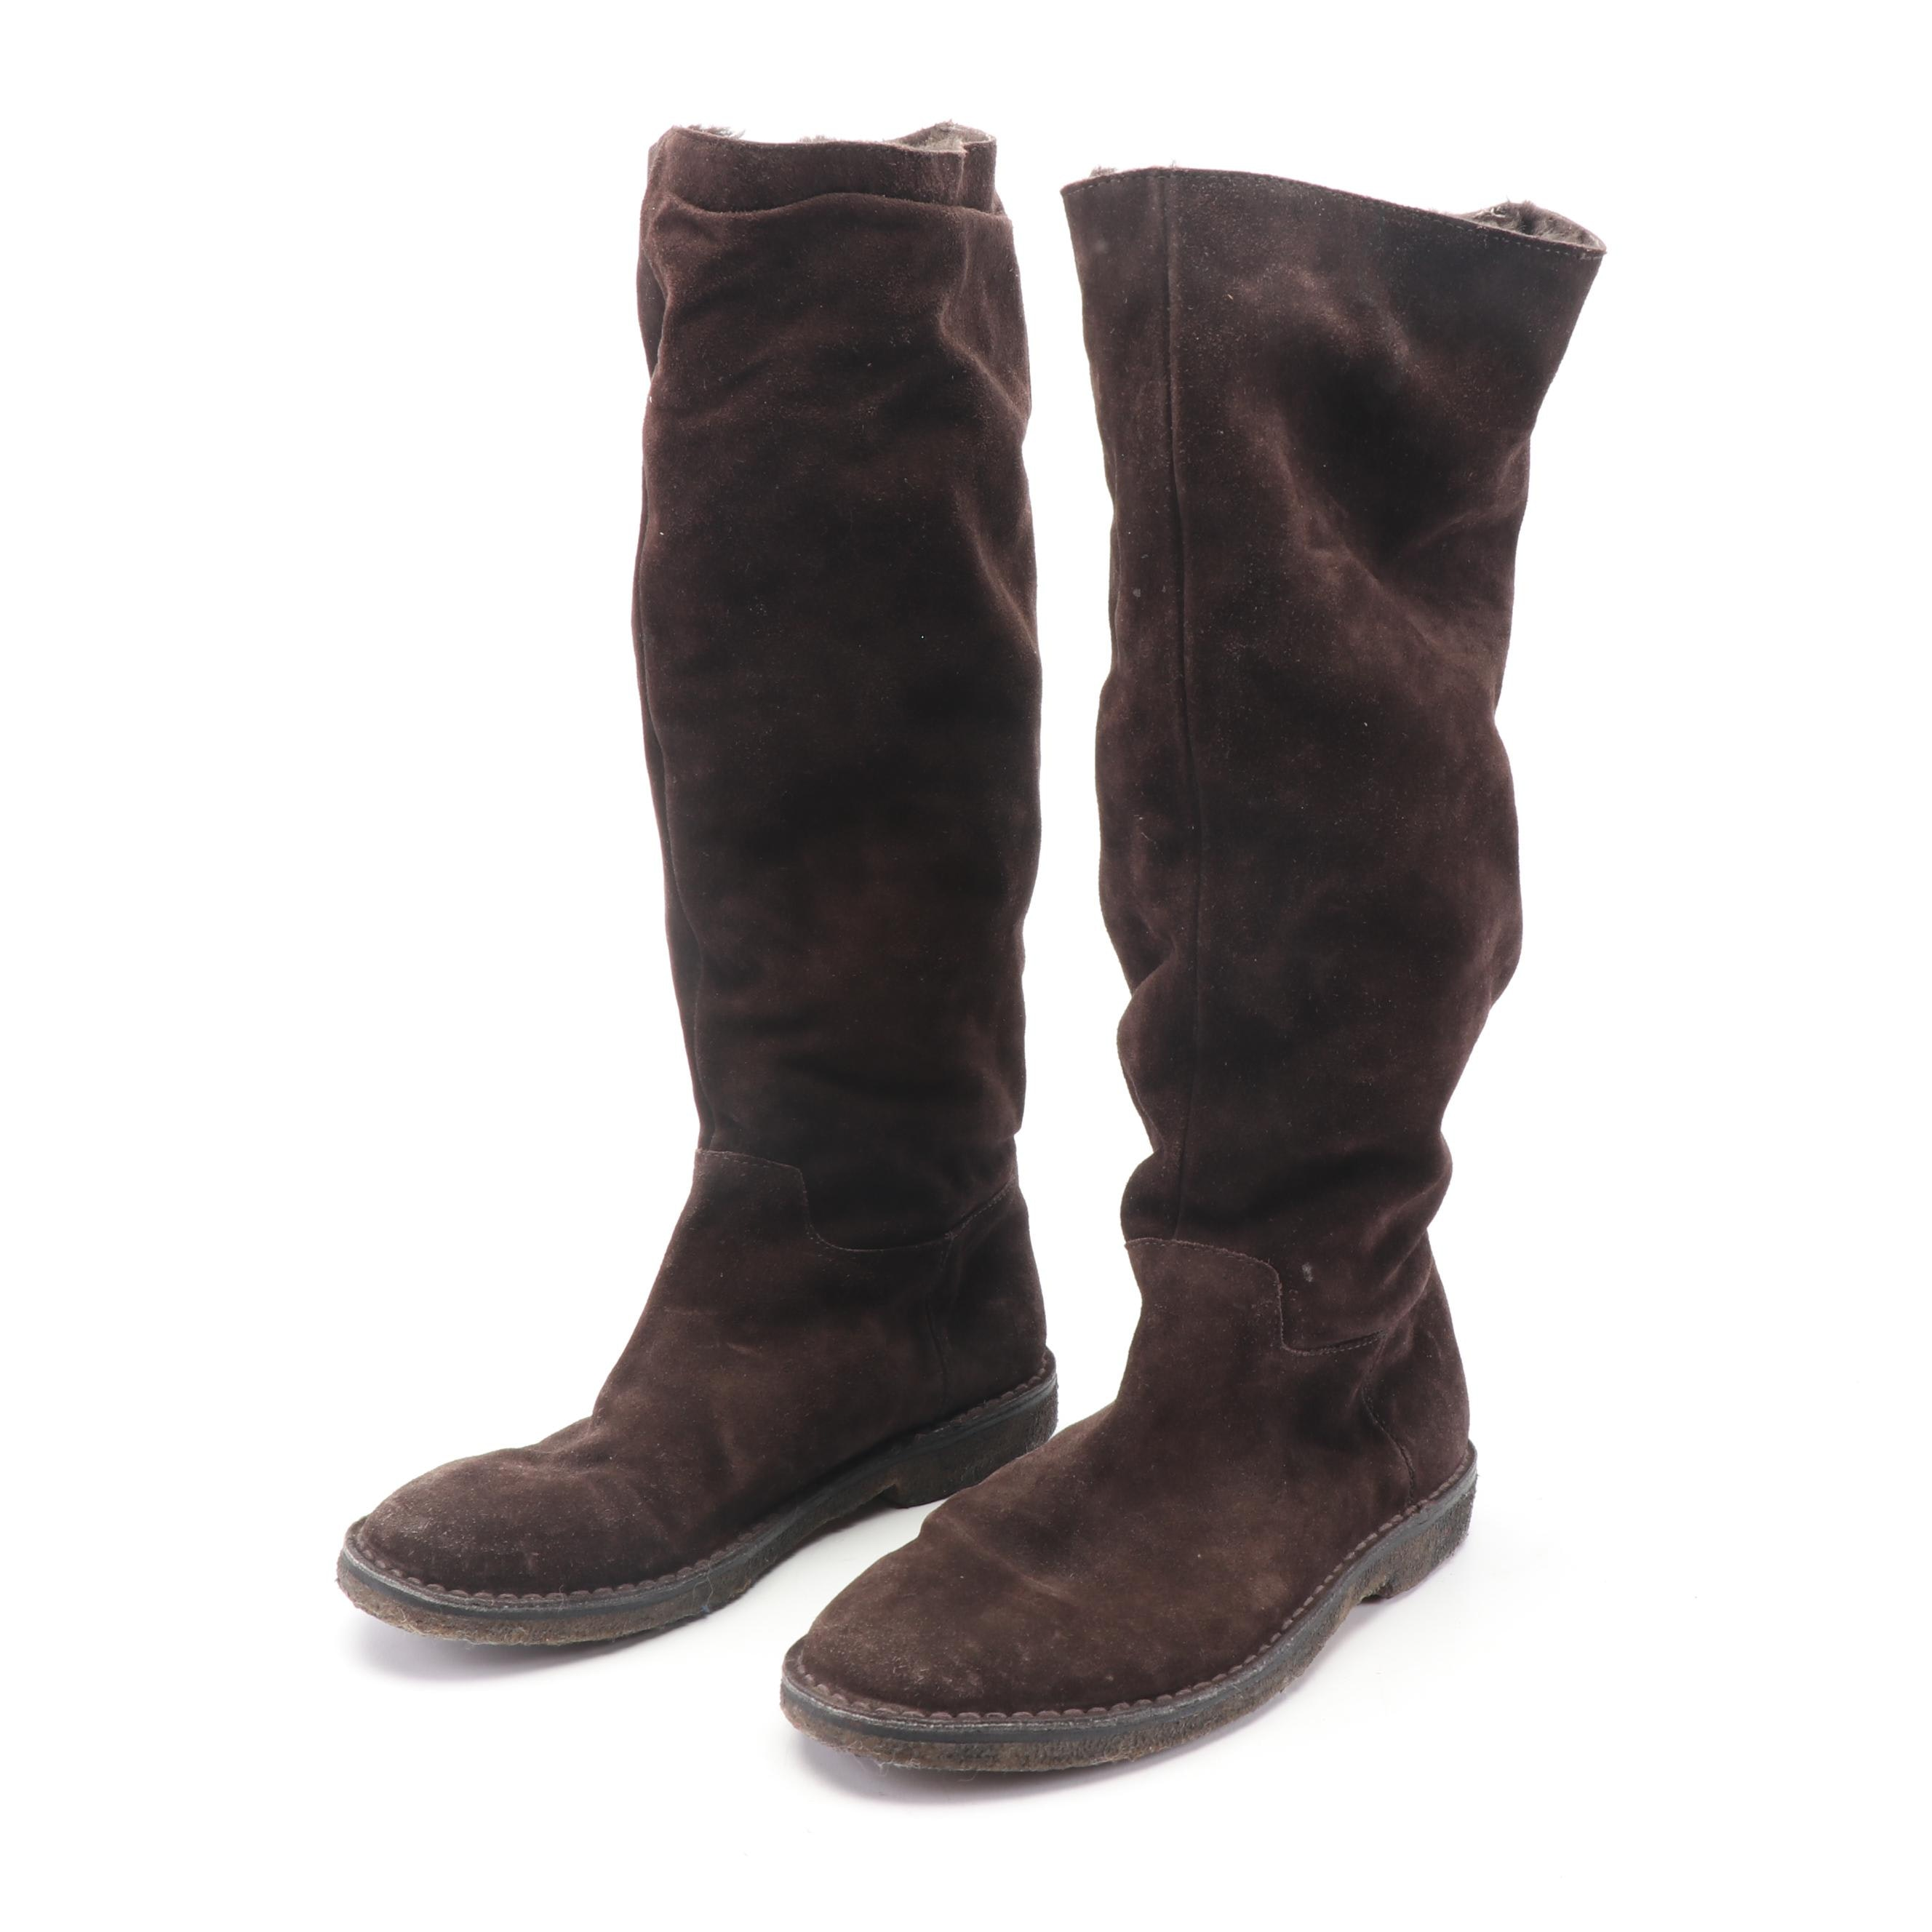 Vince Dark Brown Suede Knee-High Boots with Faux Fur Linings, Made in Italy